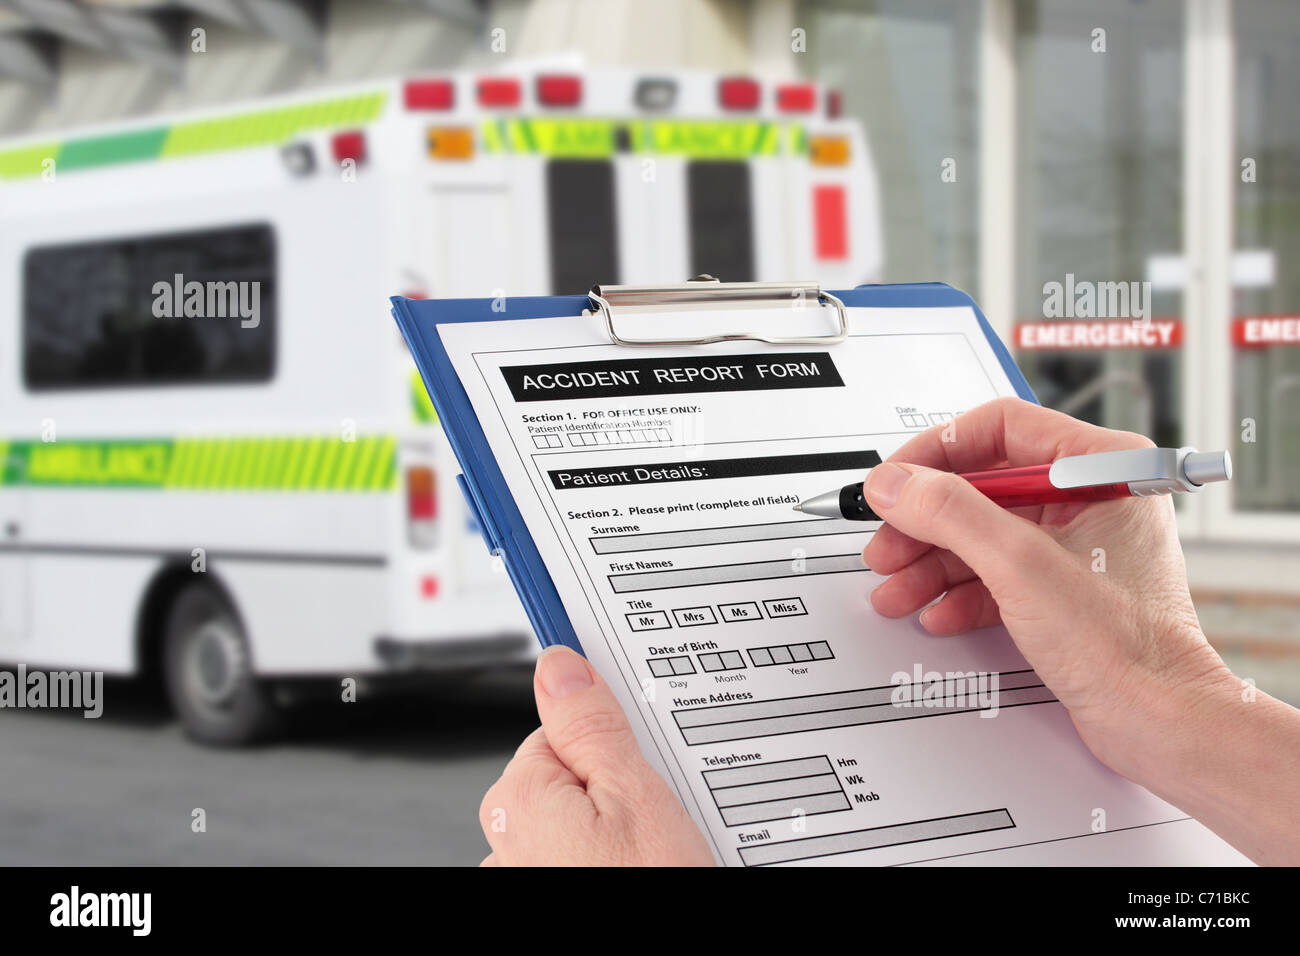 Hand Completing an Accident Report Form by Ambulance - Stock Image